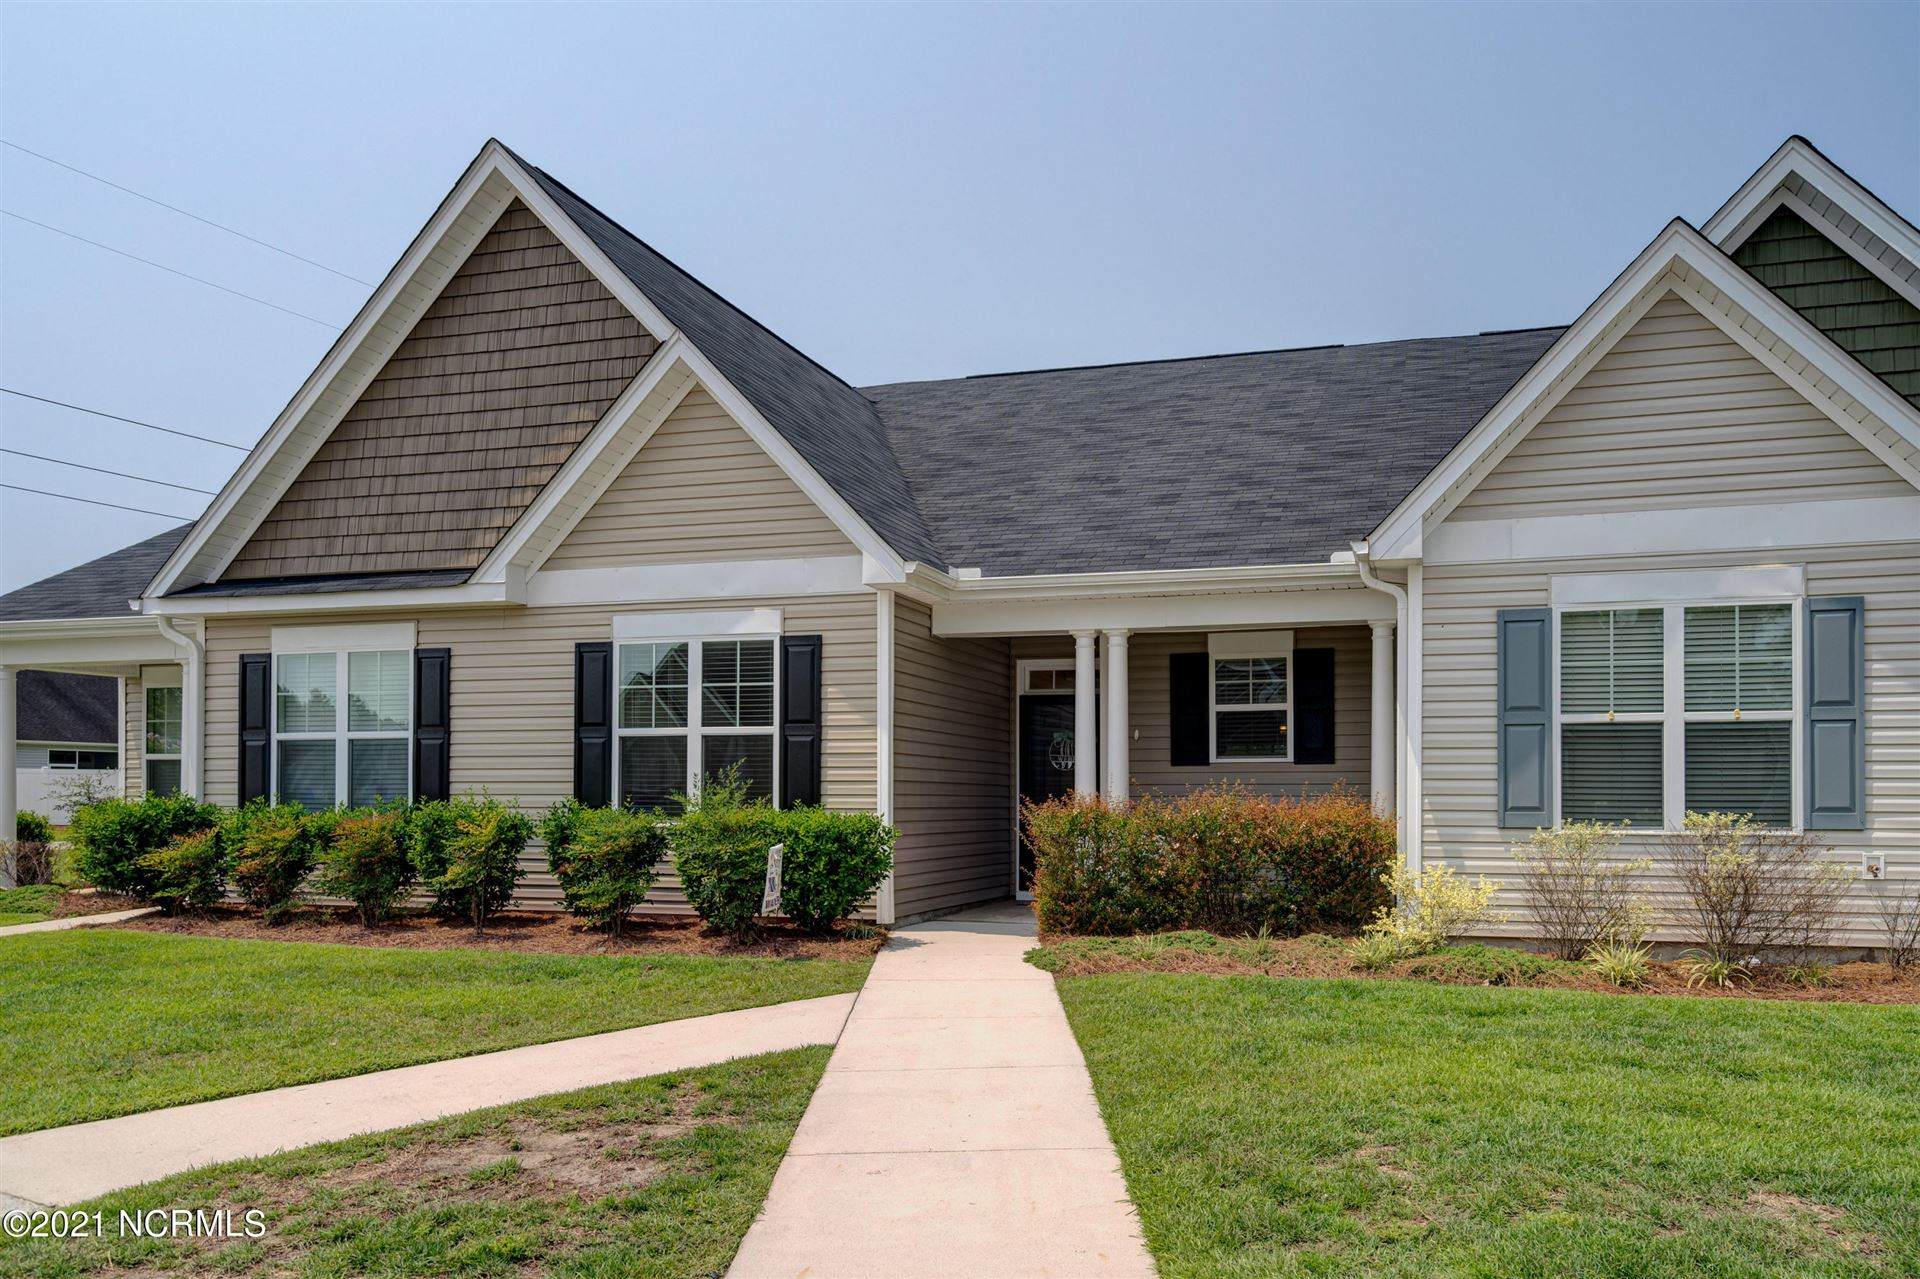 Photo for 1113 Red Bay Place, Leland, NC 28451 (MLS # 100282518)